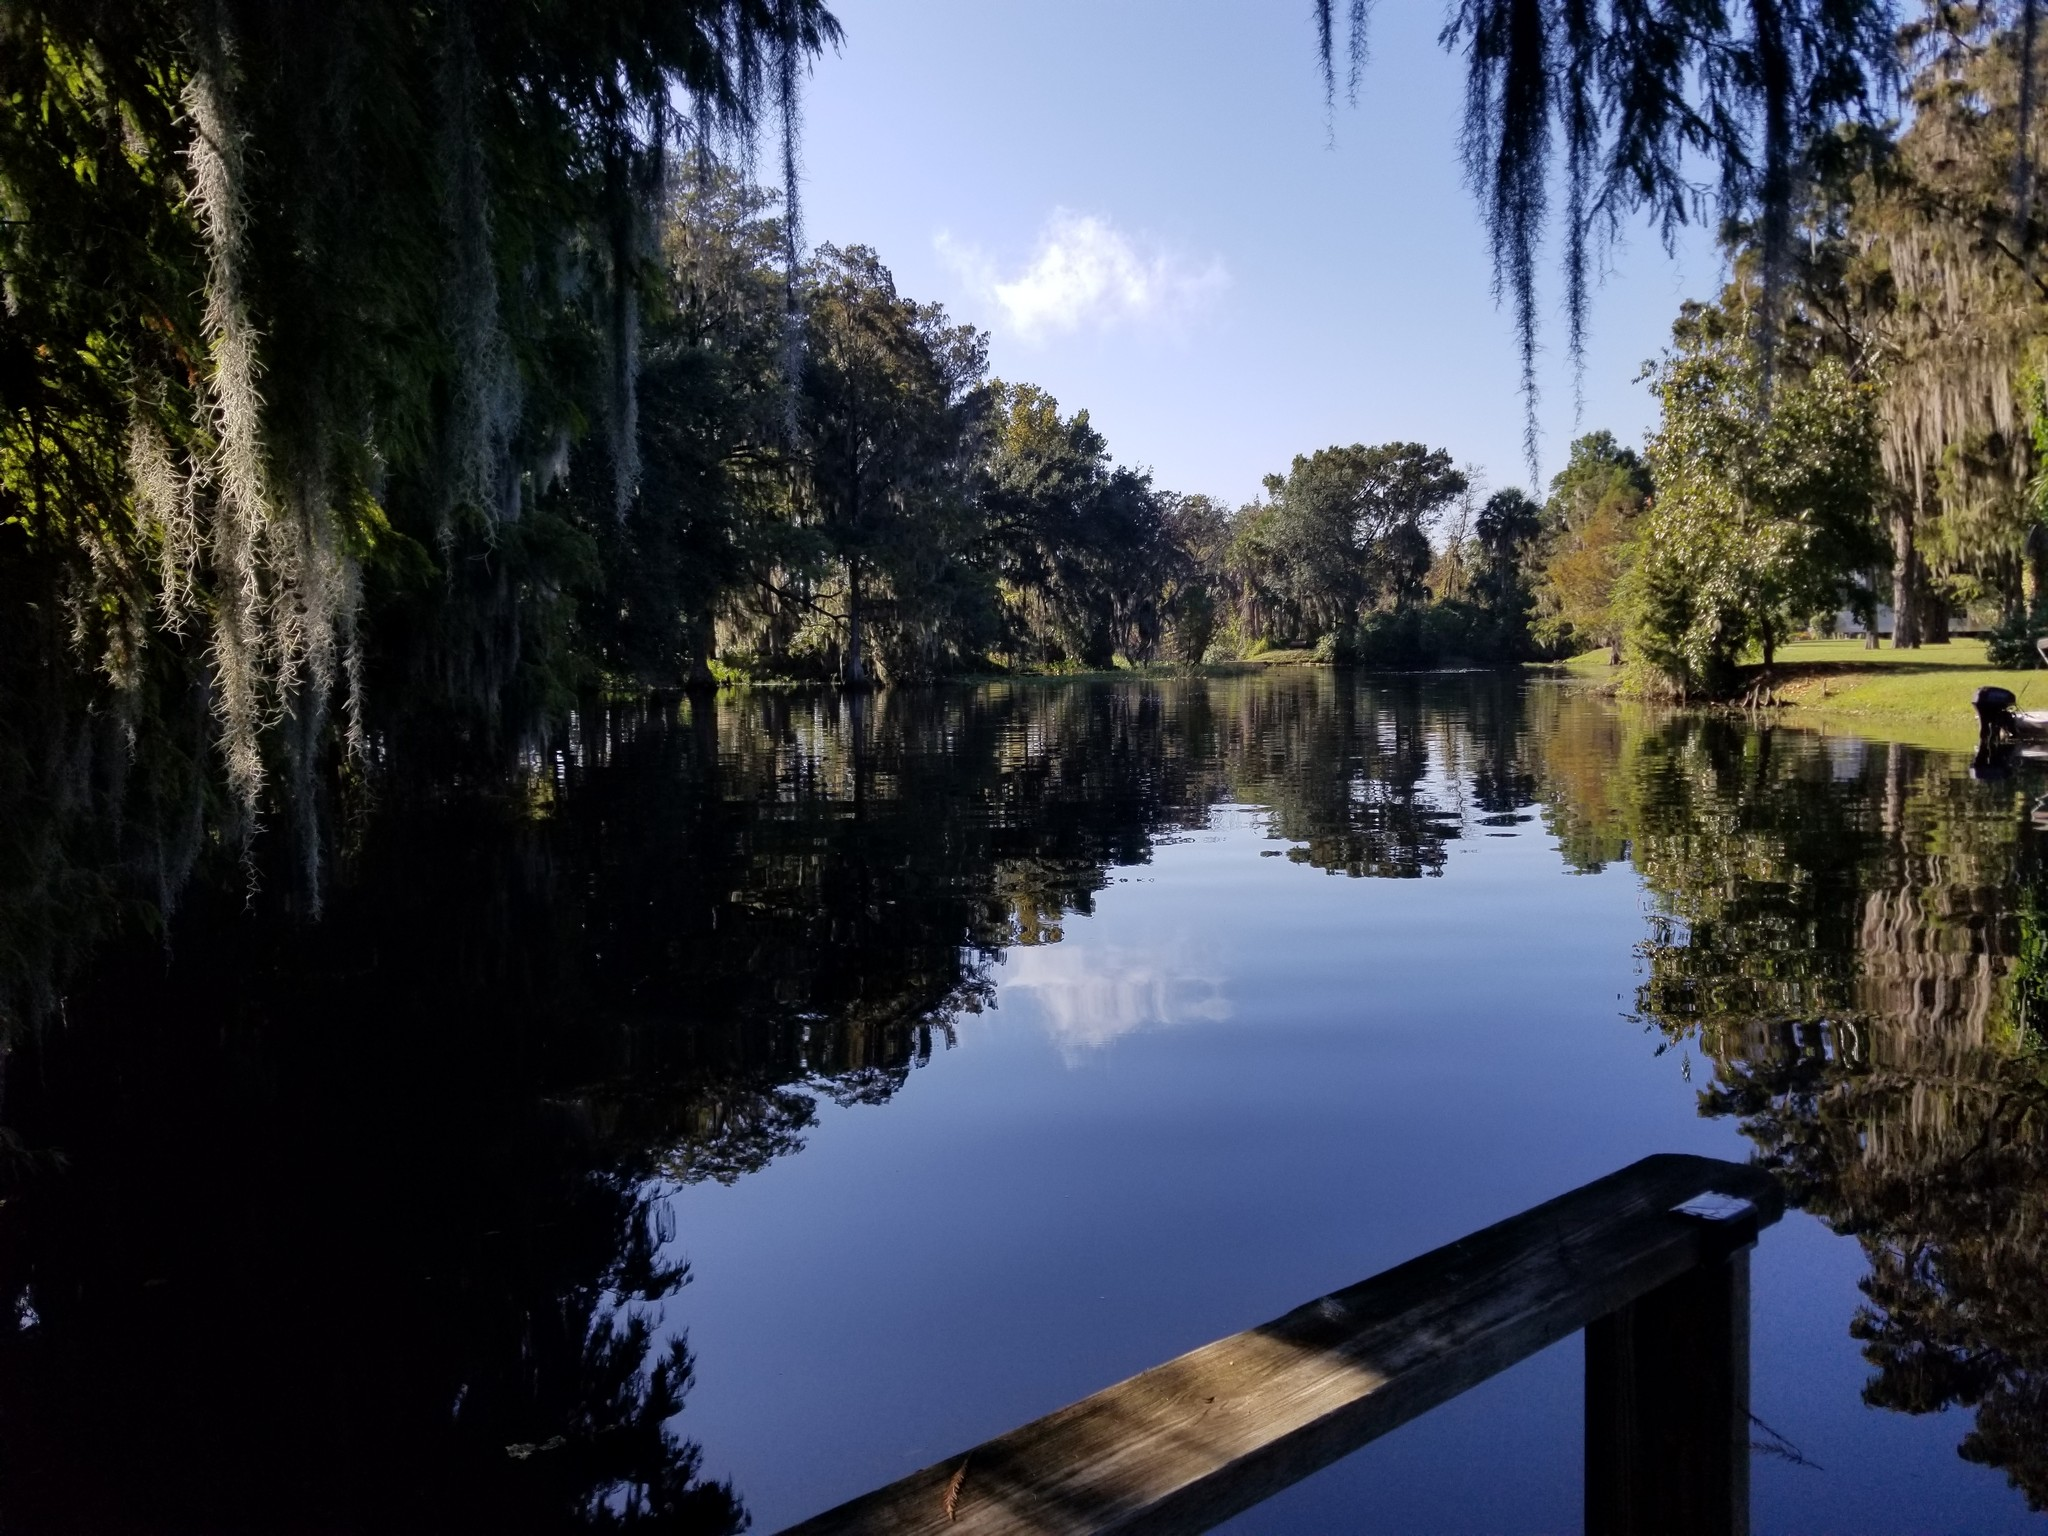 Photo taken from dock on the property of the water lined with trees and blue skies